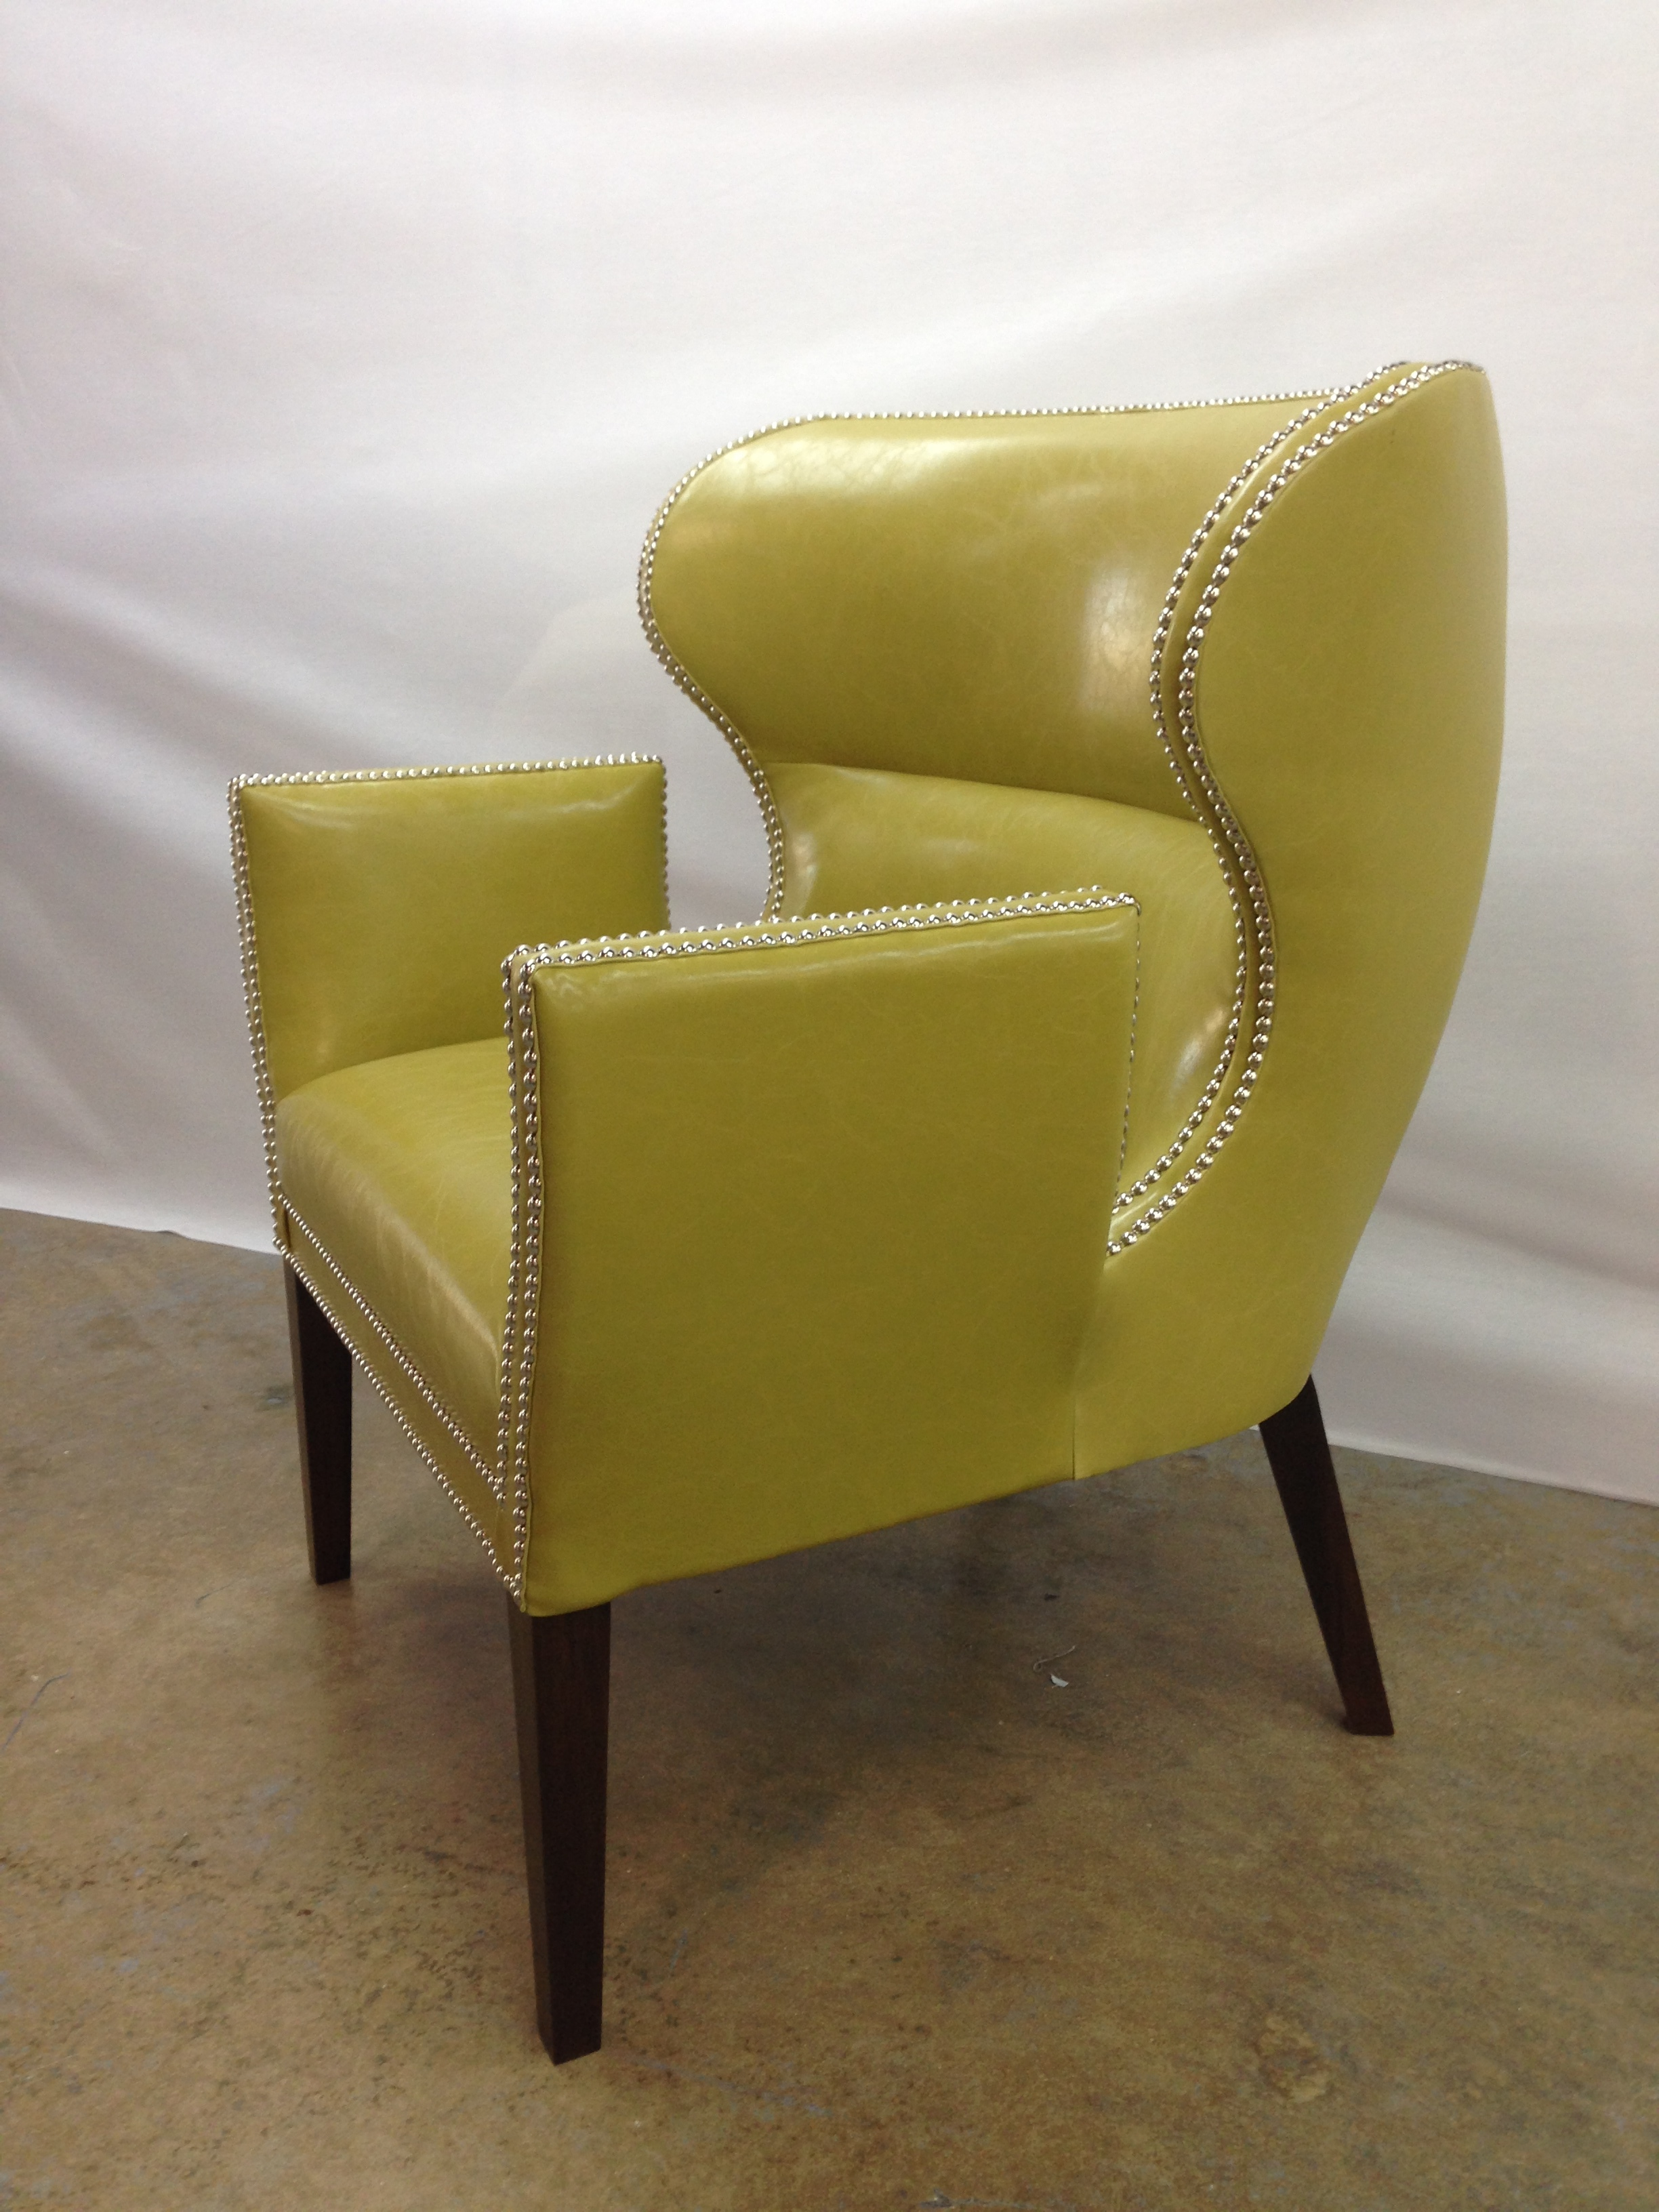 Tufted Chair - side view.JPG